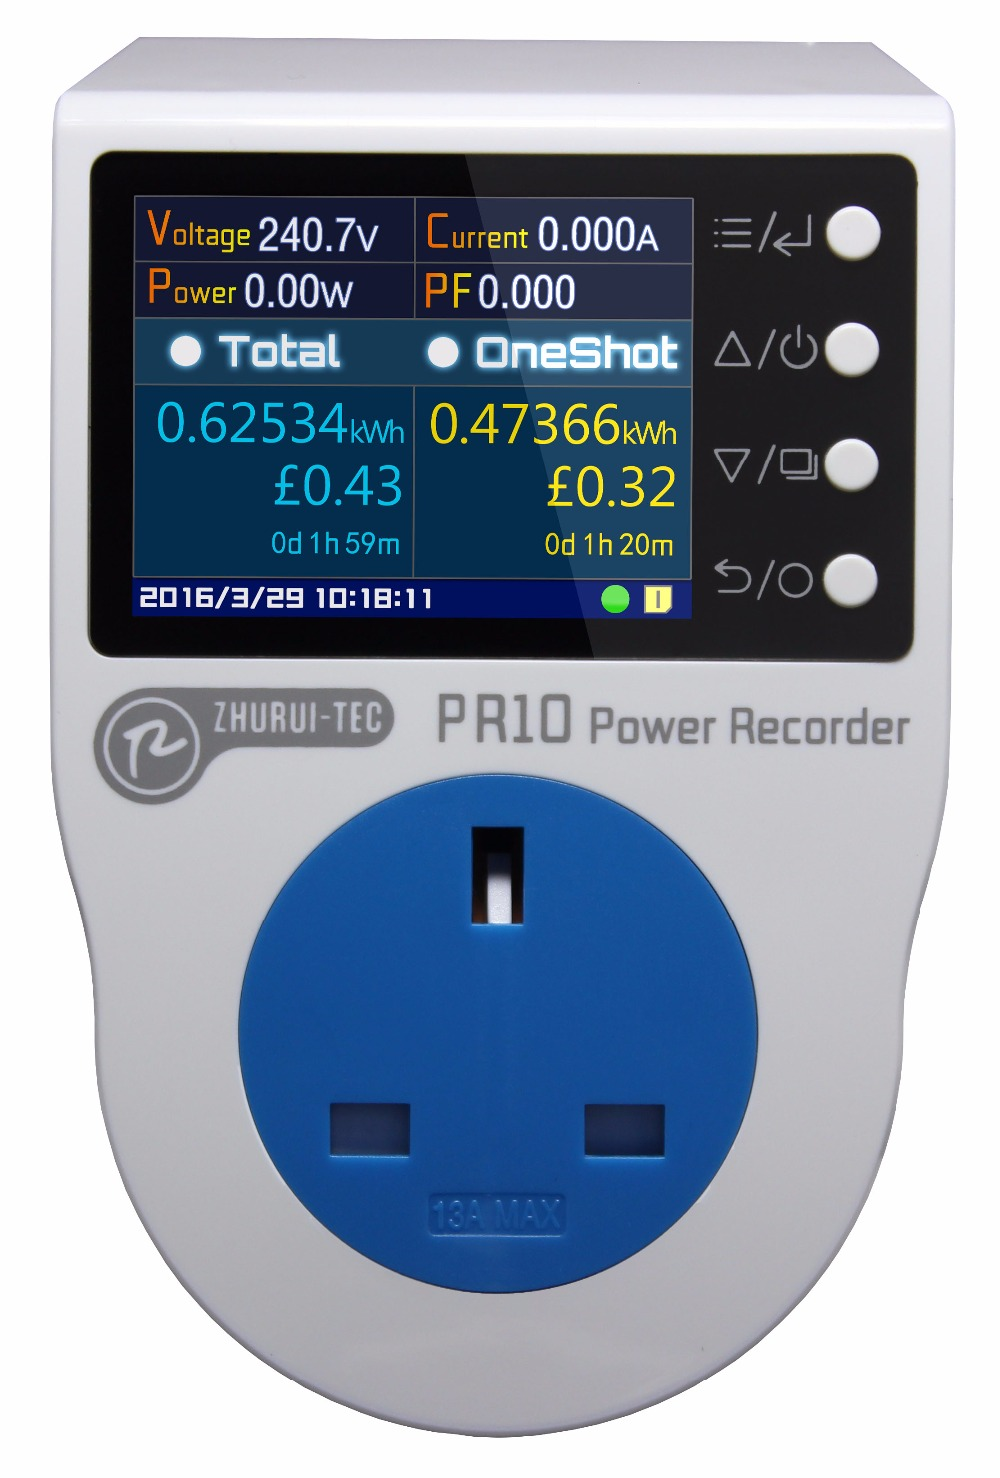 PR10 F UK 13A power metering socekt kwh meter 0 1 3250w watt meter power recorder